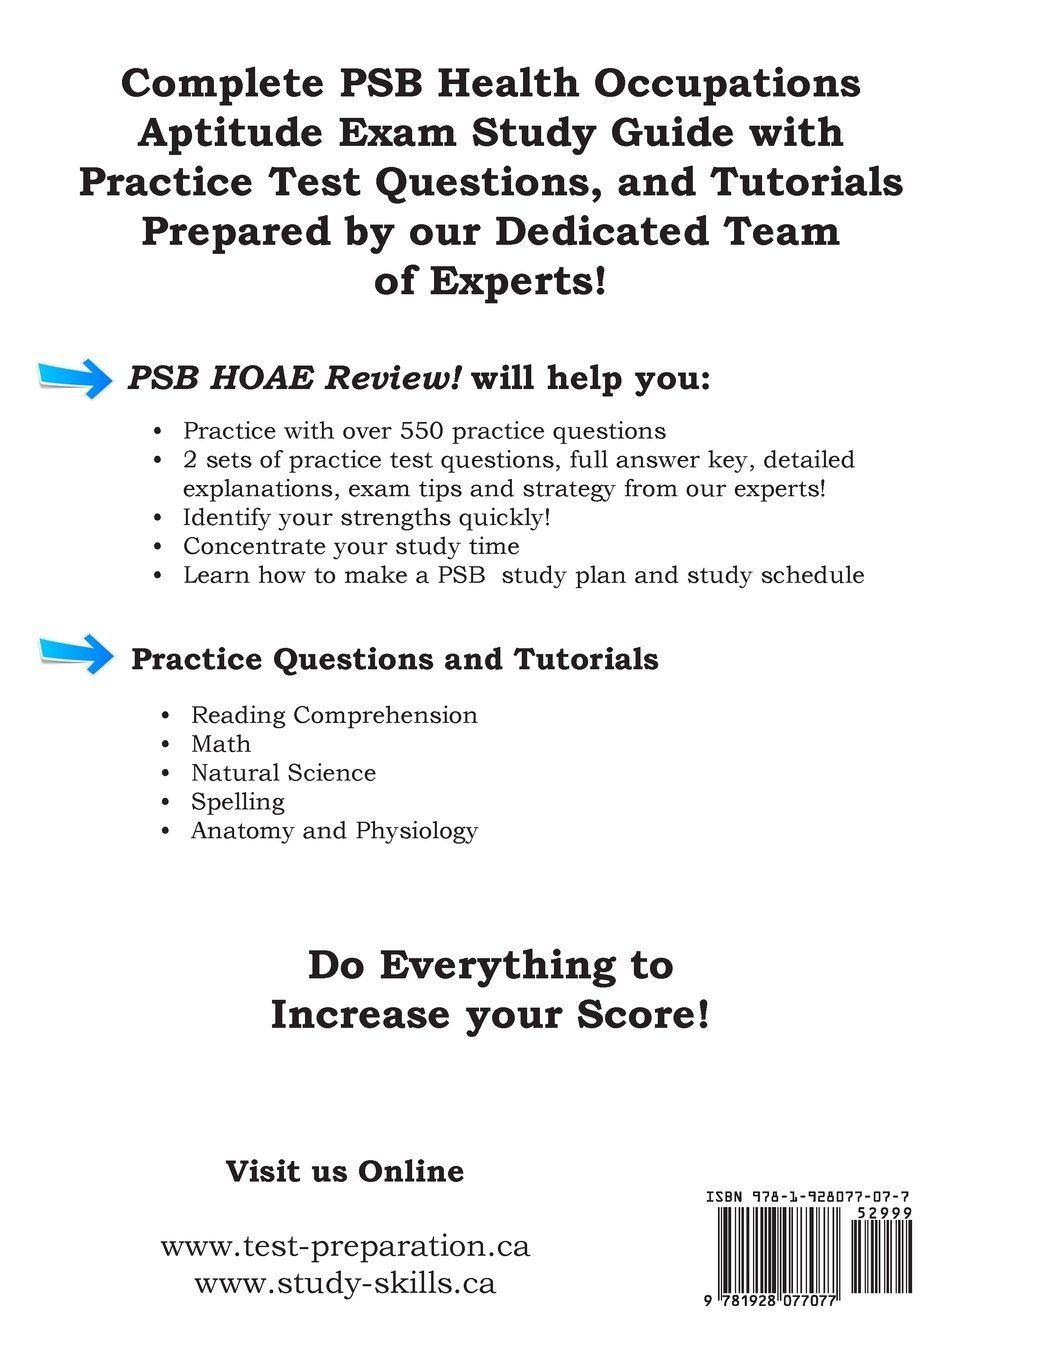 Buy PSB HOAE Review!: Complete Health Occupations Aptitude Test ...